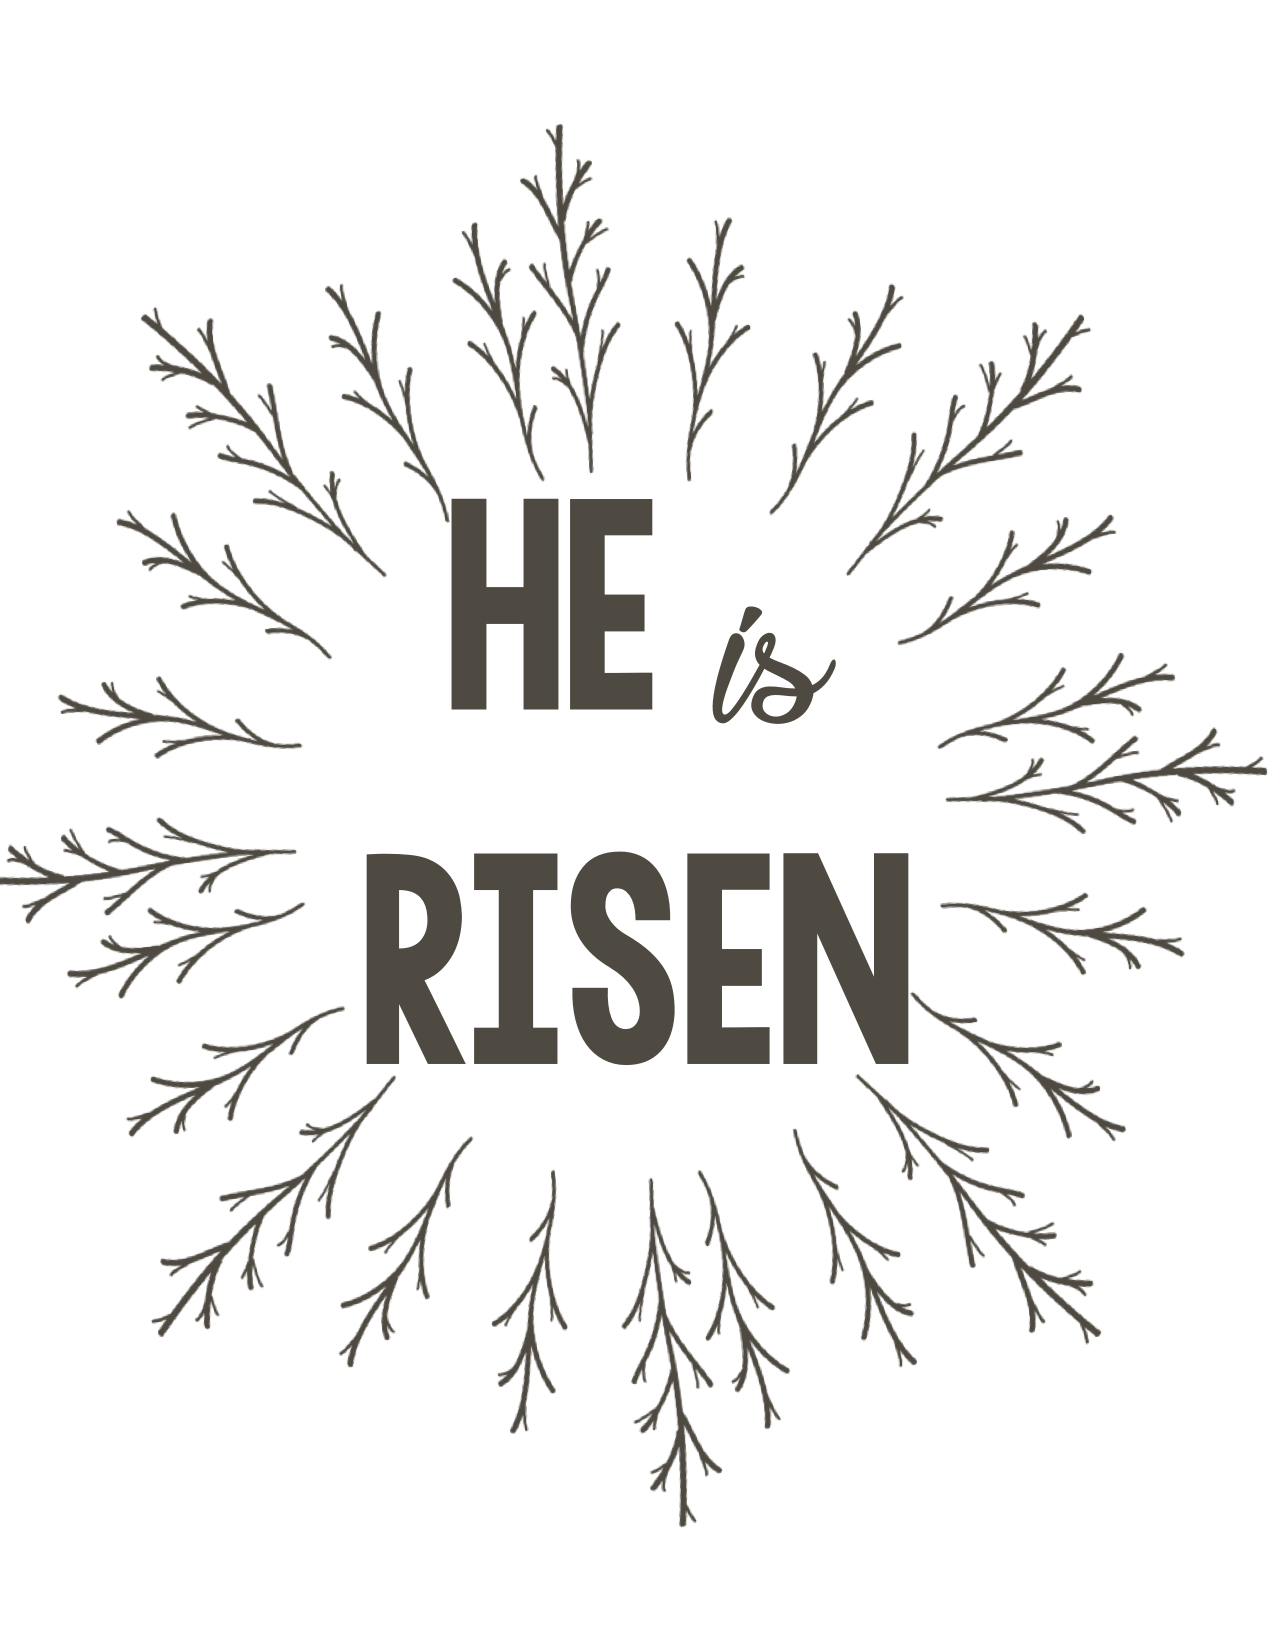 It's just an image of Crazy He is Risen Printable